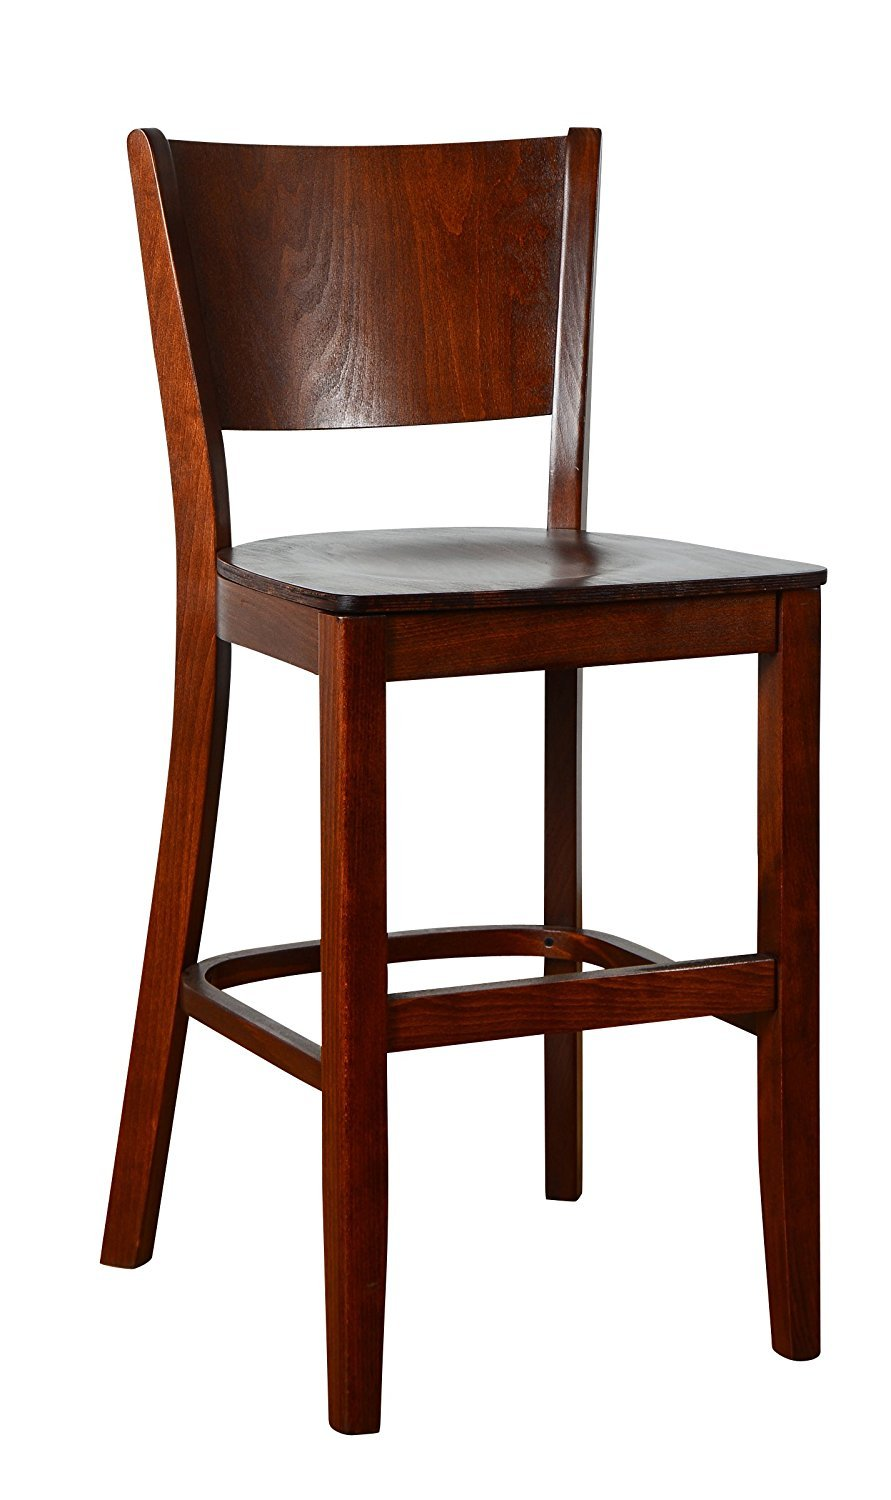 Beechwood Mountain BSD-86B24-MO Solid Beech Wood Counter Stool in Medium Oak with wood seat for Kitchen and dining by Beechwood Mountain